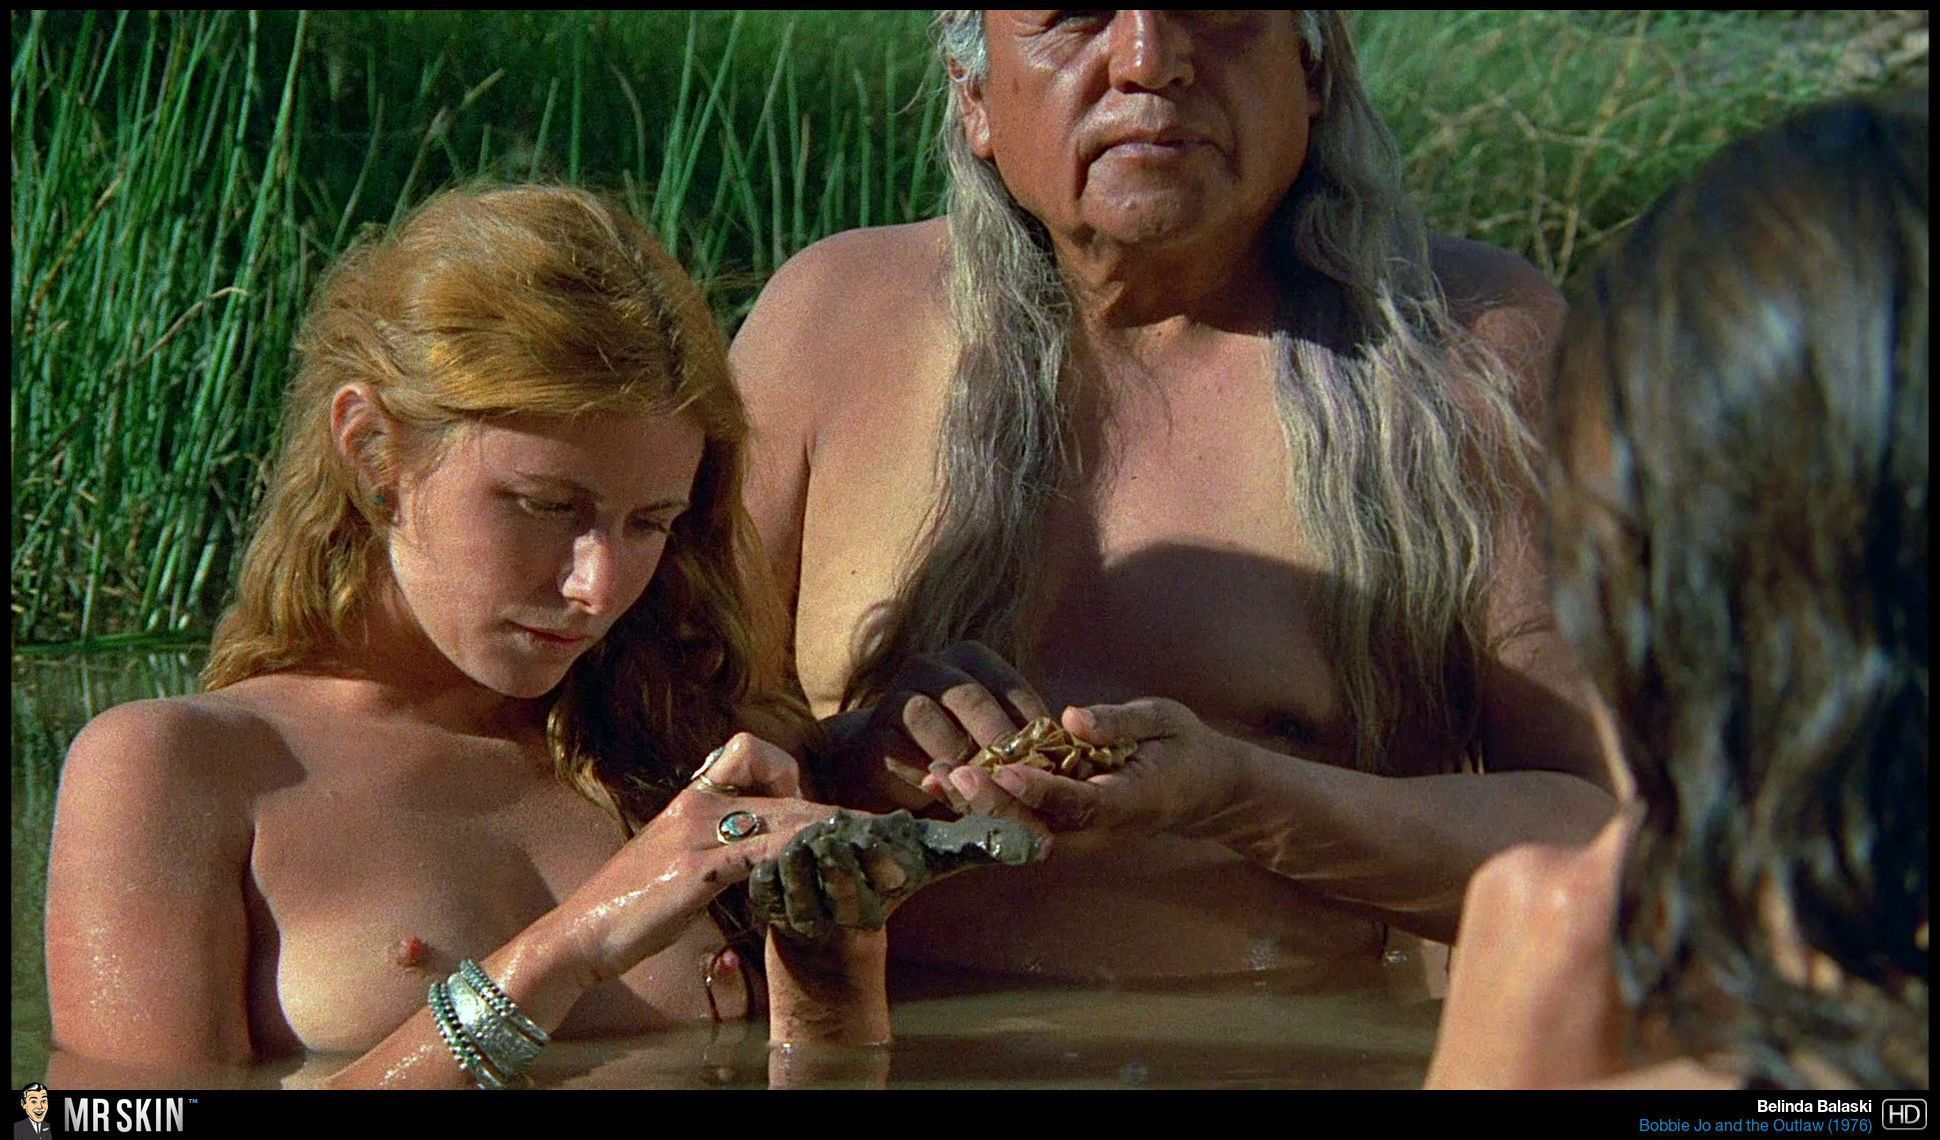 Bobbie jo and the outlaw nude scenes — photo 8